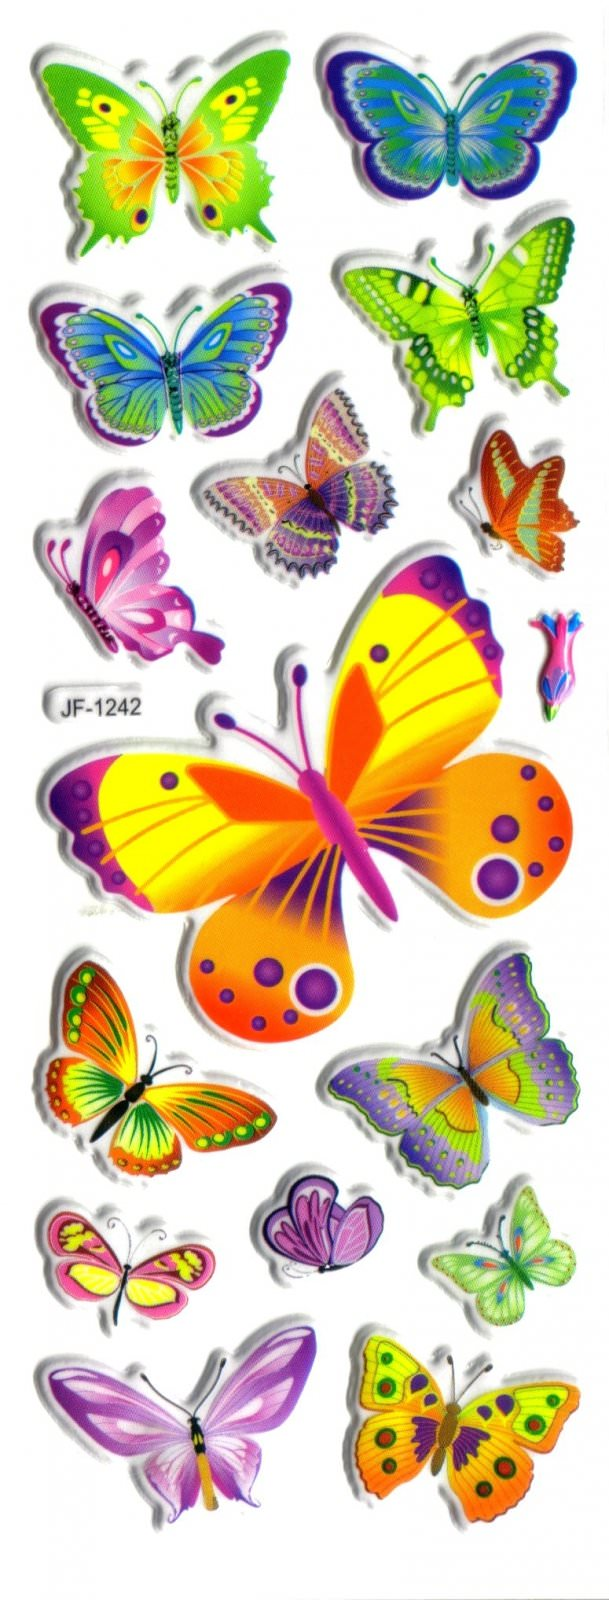 Magommette gommettes autocollantes sticker adh sif 7x17cm for Papillon de decoration